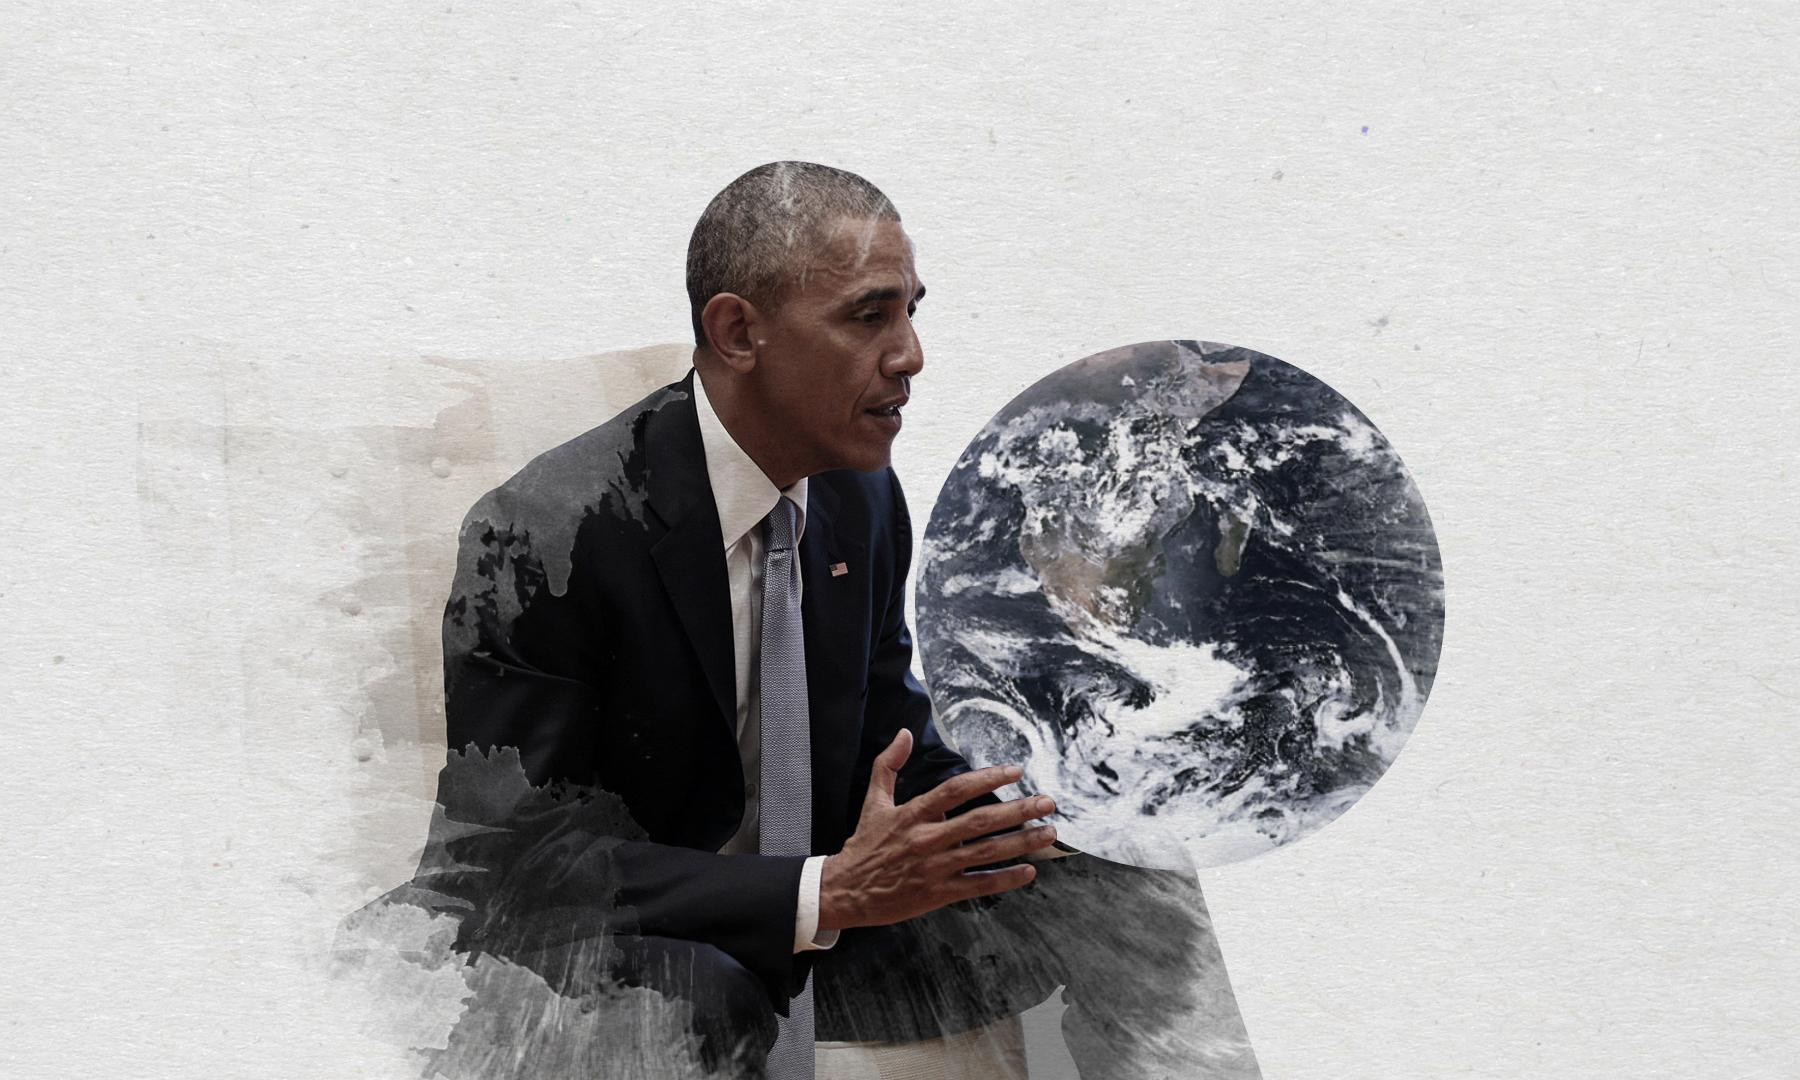 Obama's dirty secret: the fossil fuel projects the US littered around the world